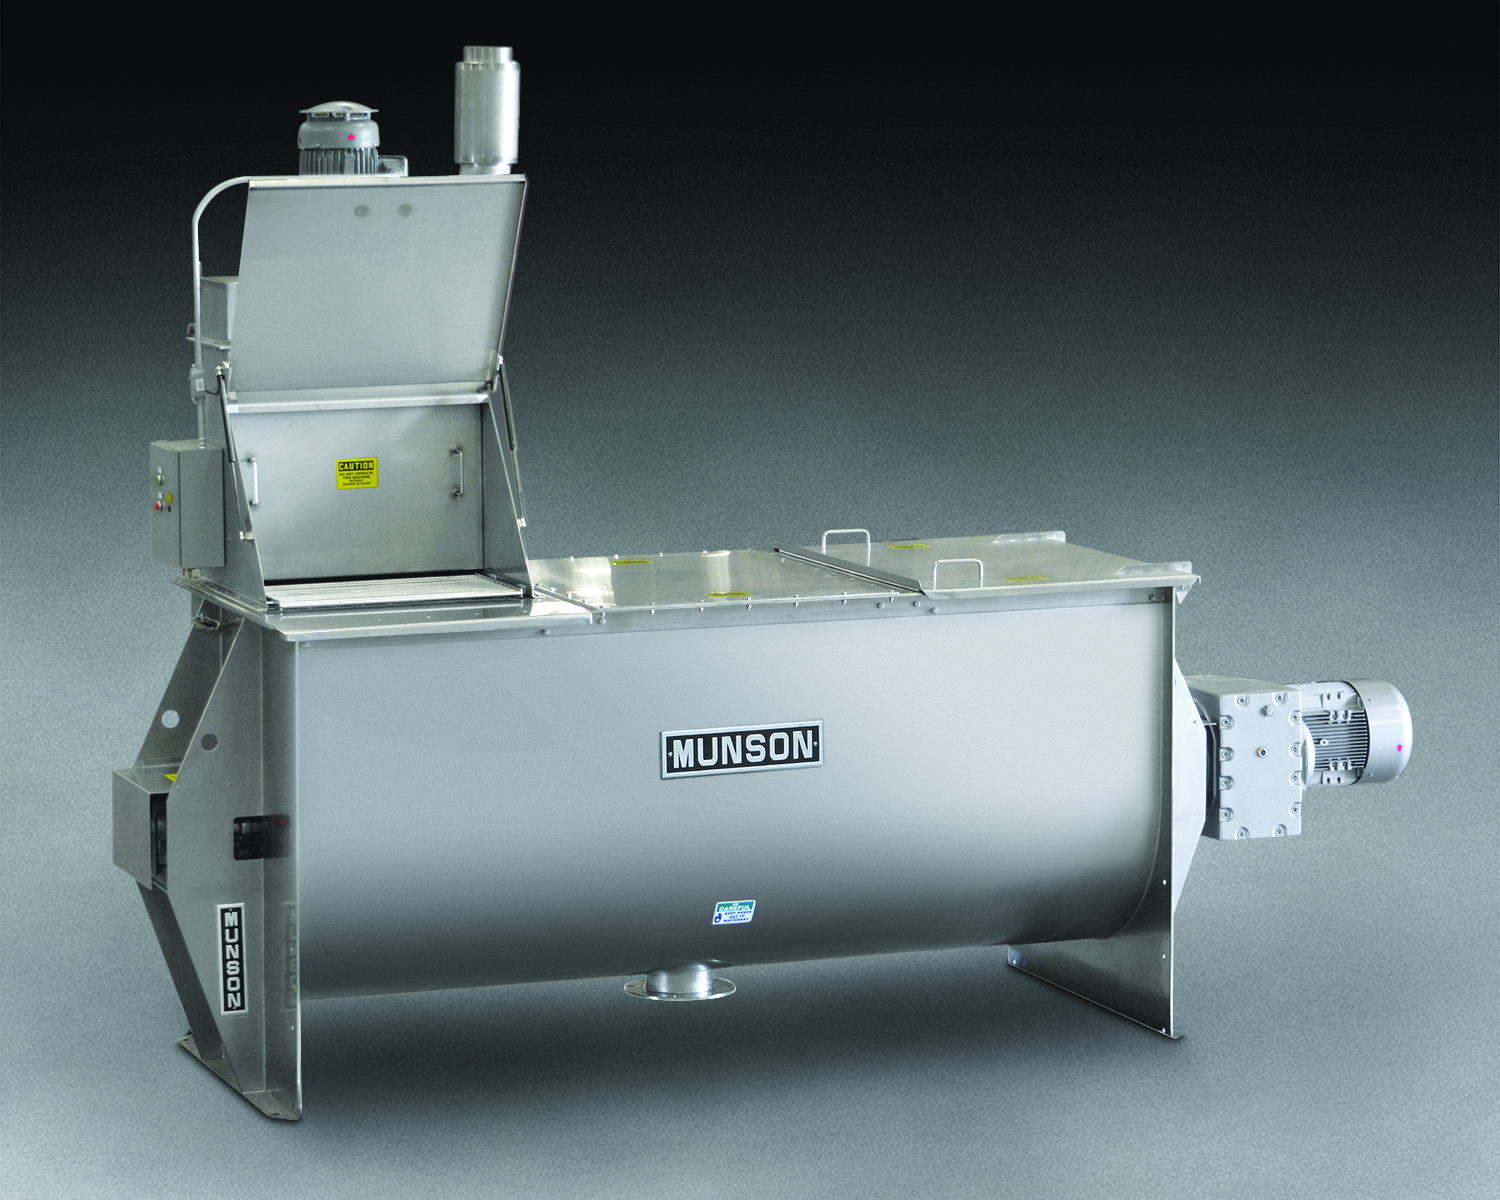 Munson Machinery Ribbon Blender HD-3.5-9-SS